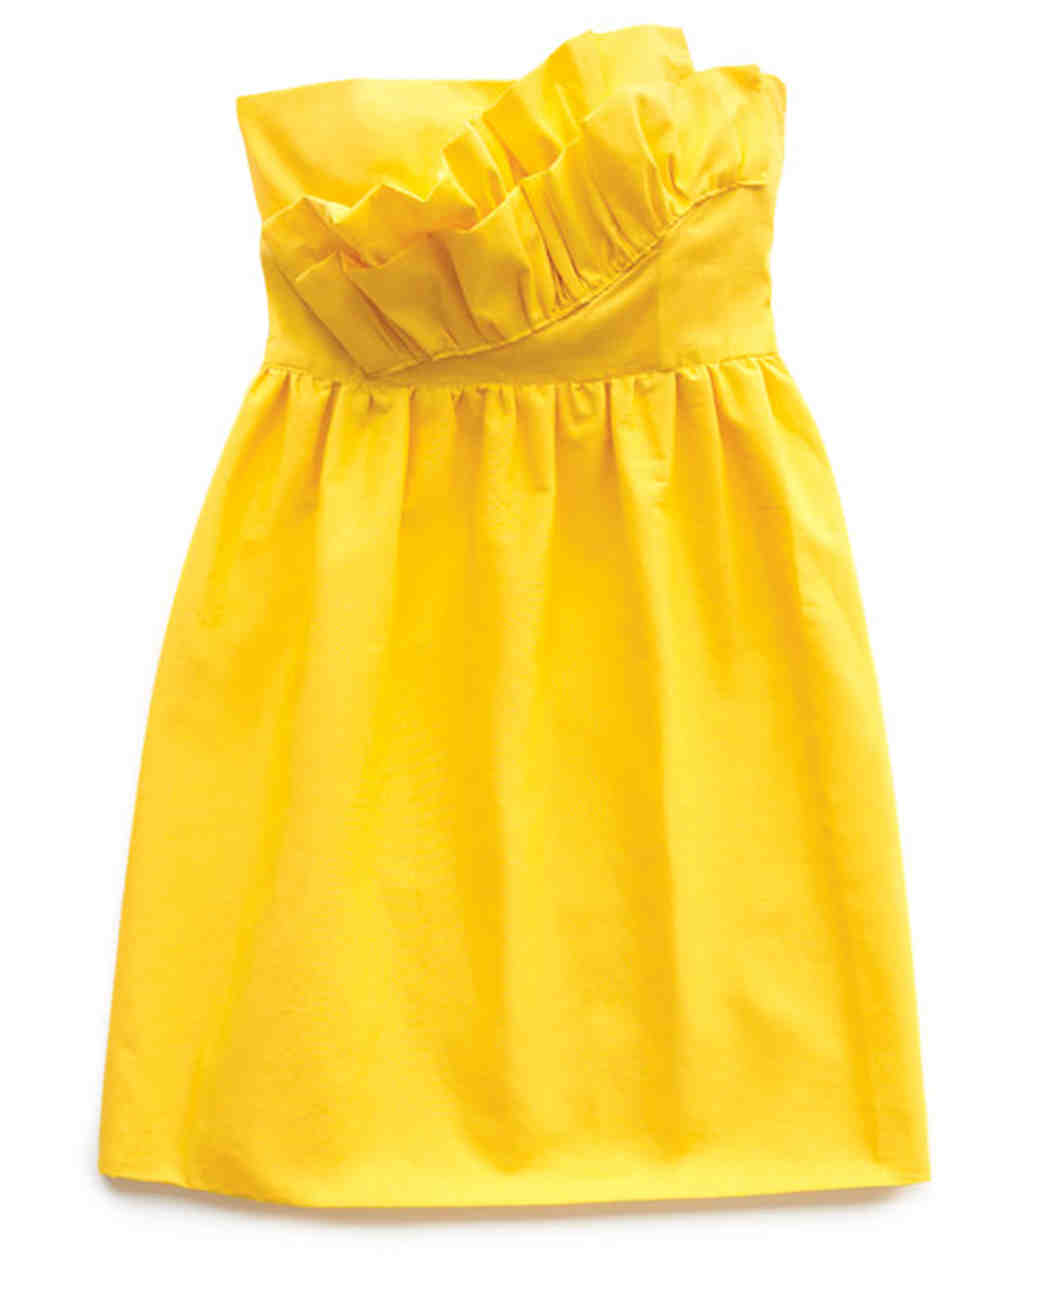 mwd105762_sum10_dress1.jpg